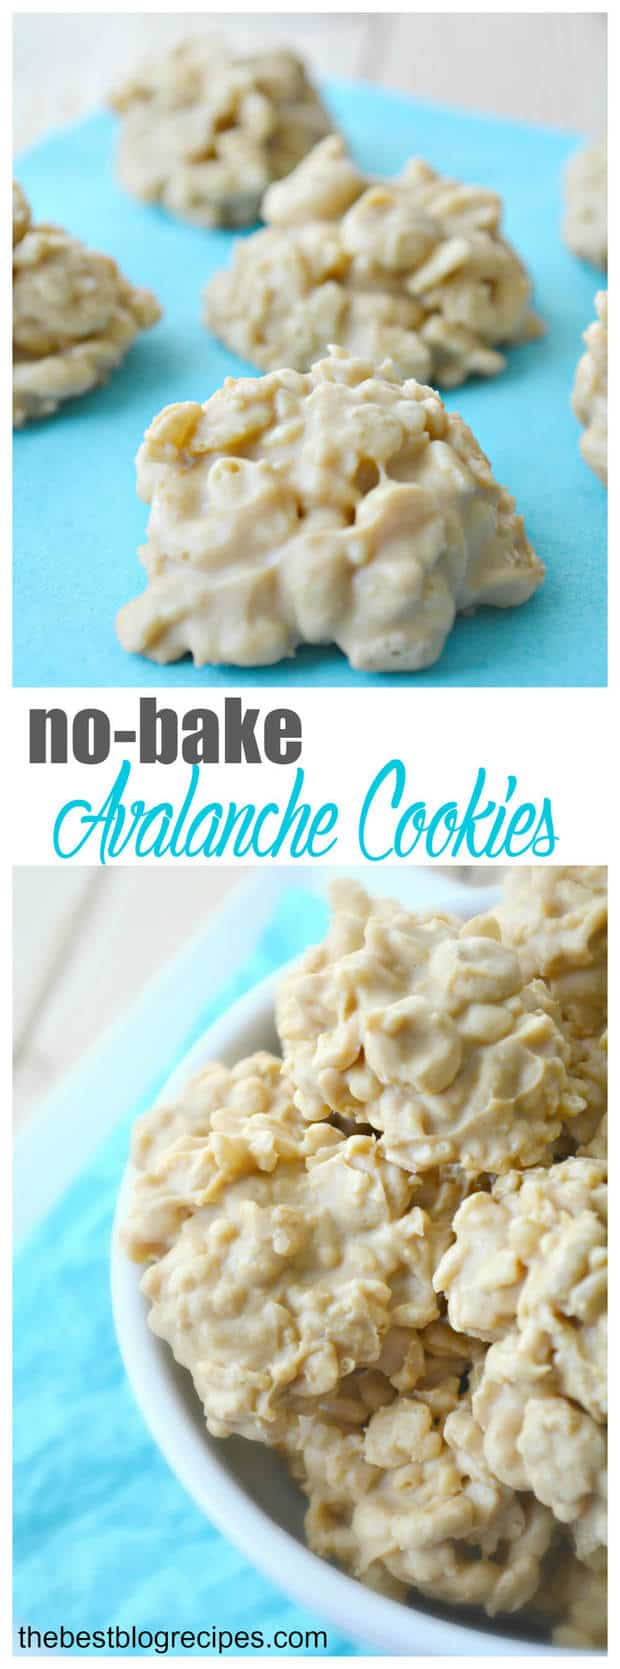 No-Bake Avalanche Cookies are such an easy and yummy treat! You're family will love them! | thebestblogrecipes.com